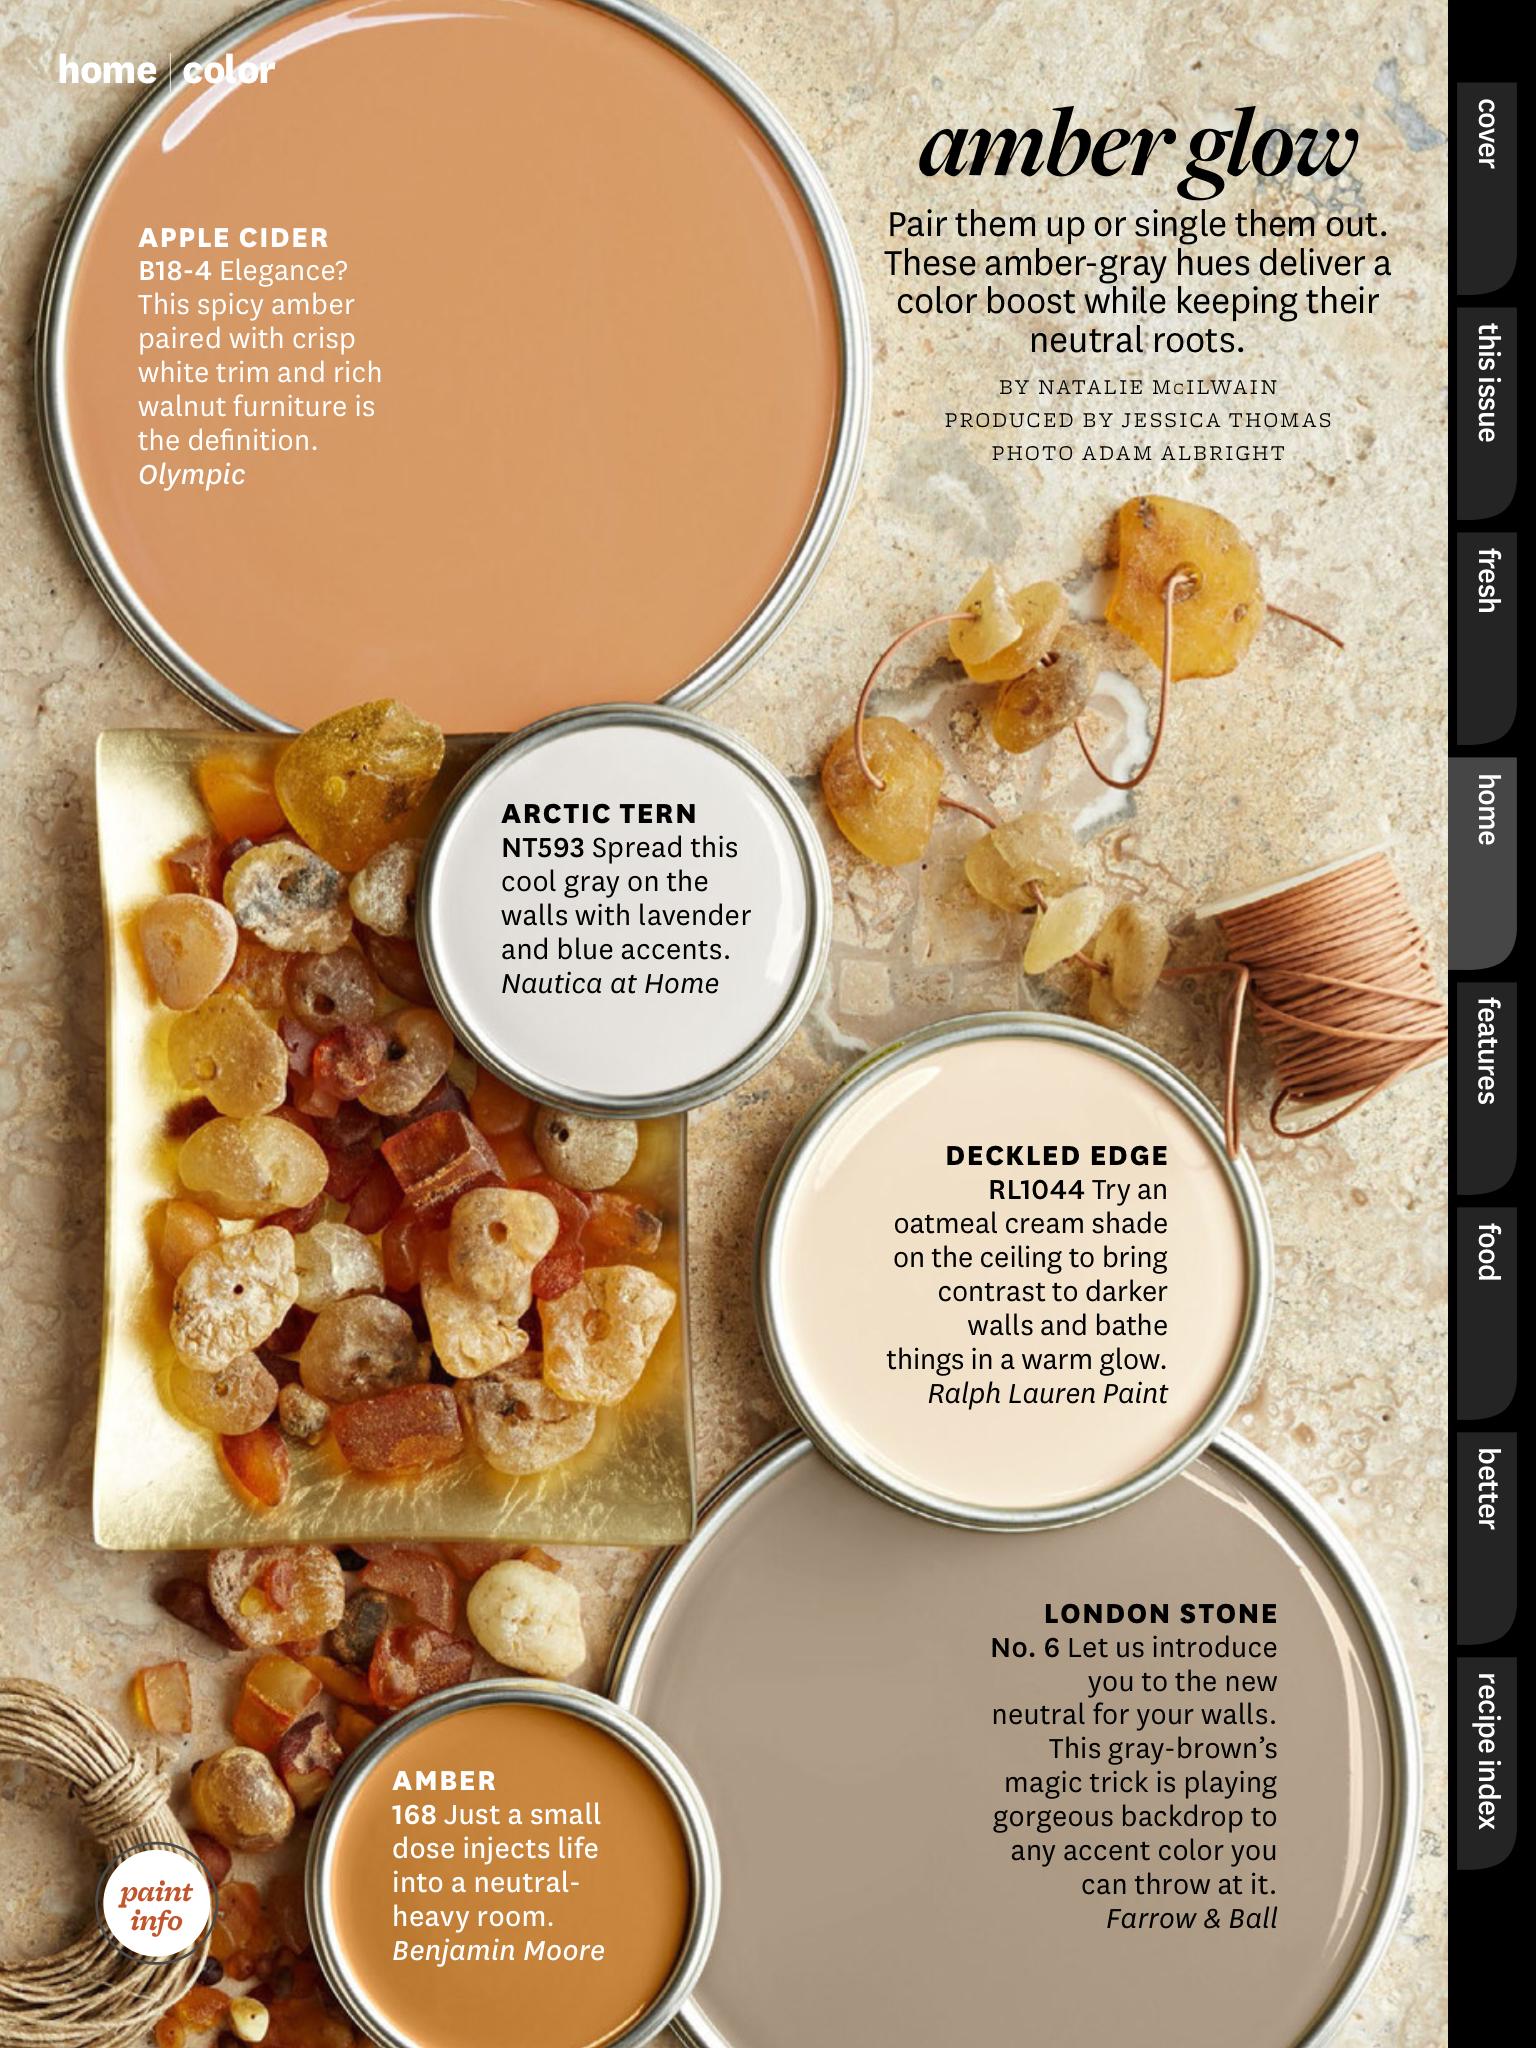 Better Home And Gardens Featured Paint Shades: | home ideas ...